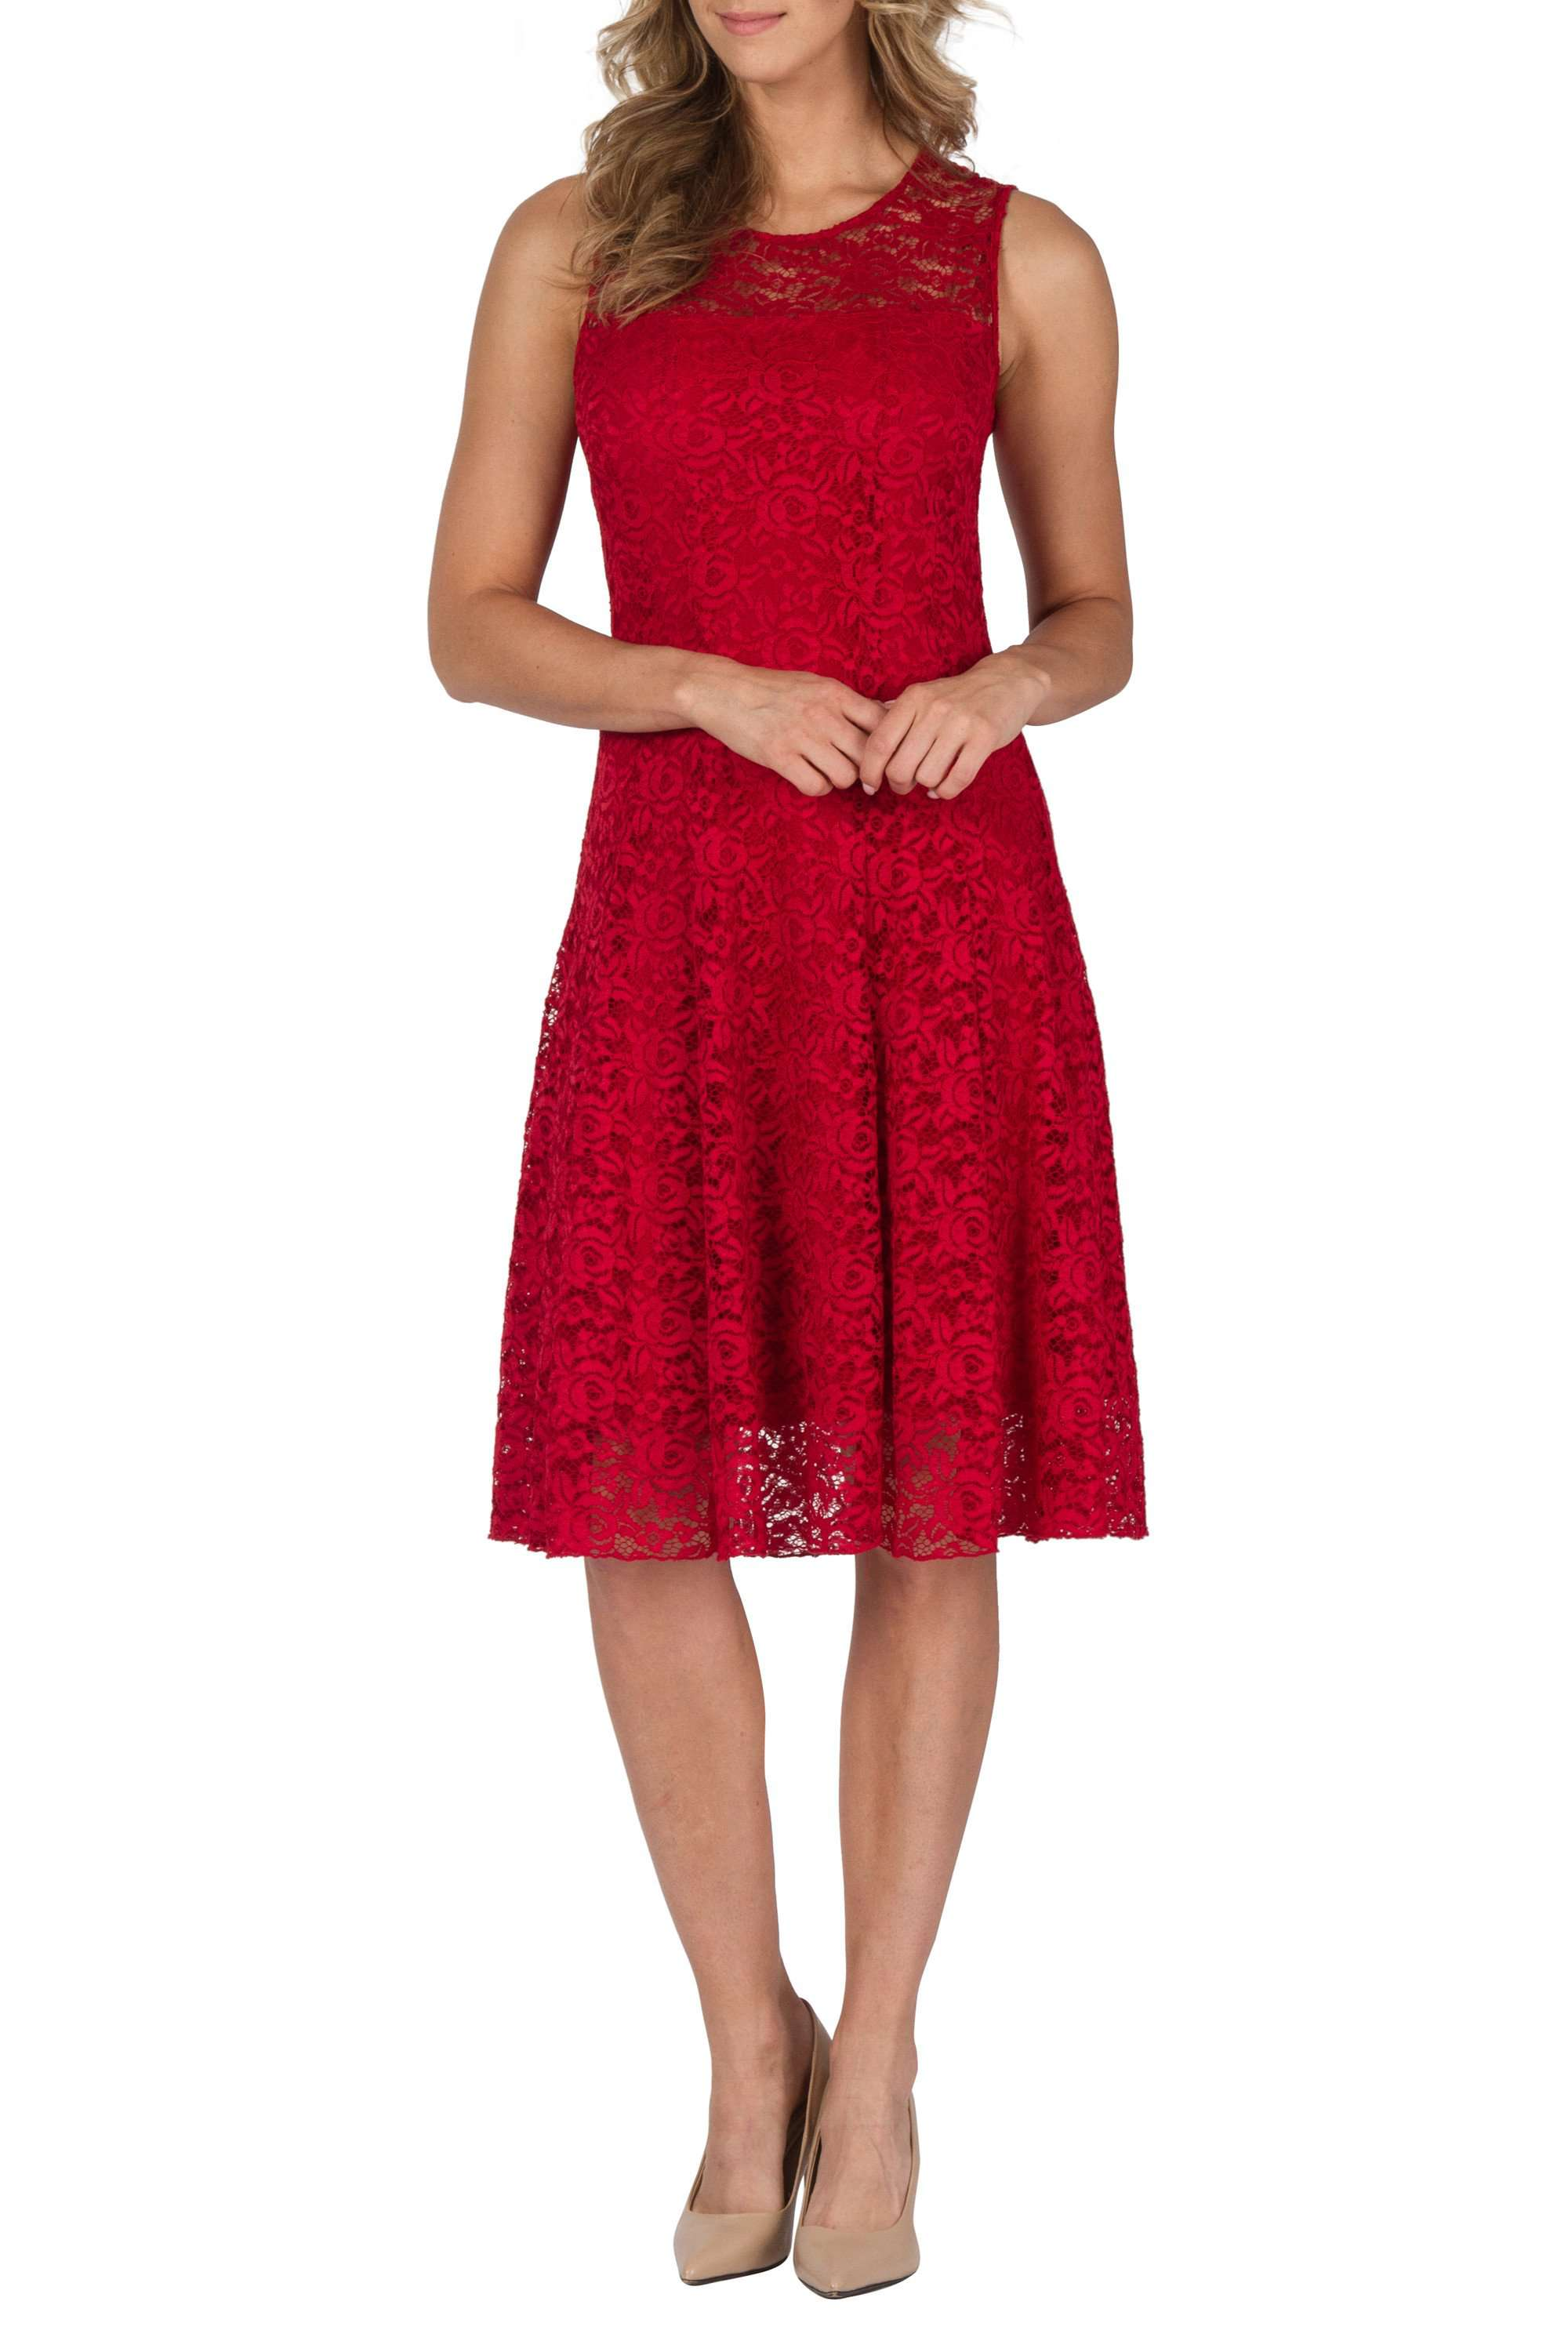 Women's Dress Red Lace Flattering Fit - Made in Canada - Yvonne Marie - Yvonne Marie